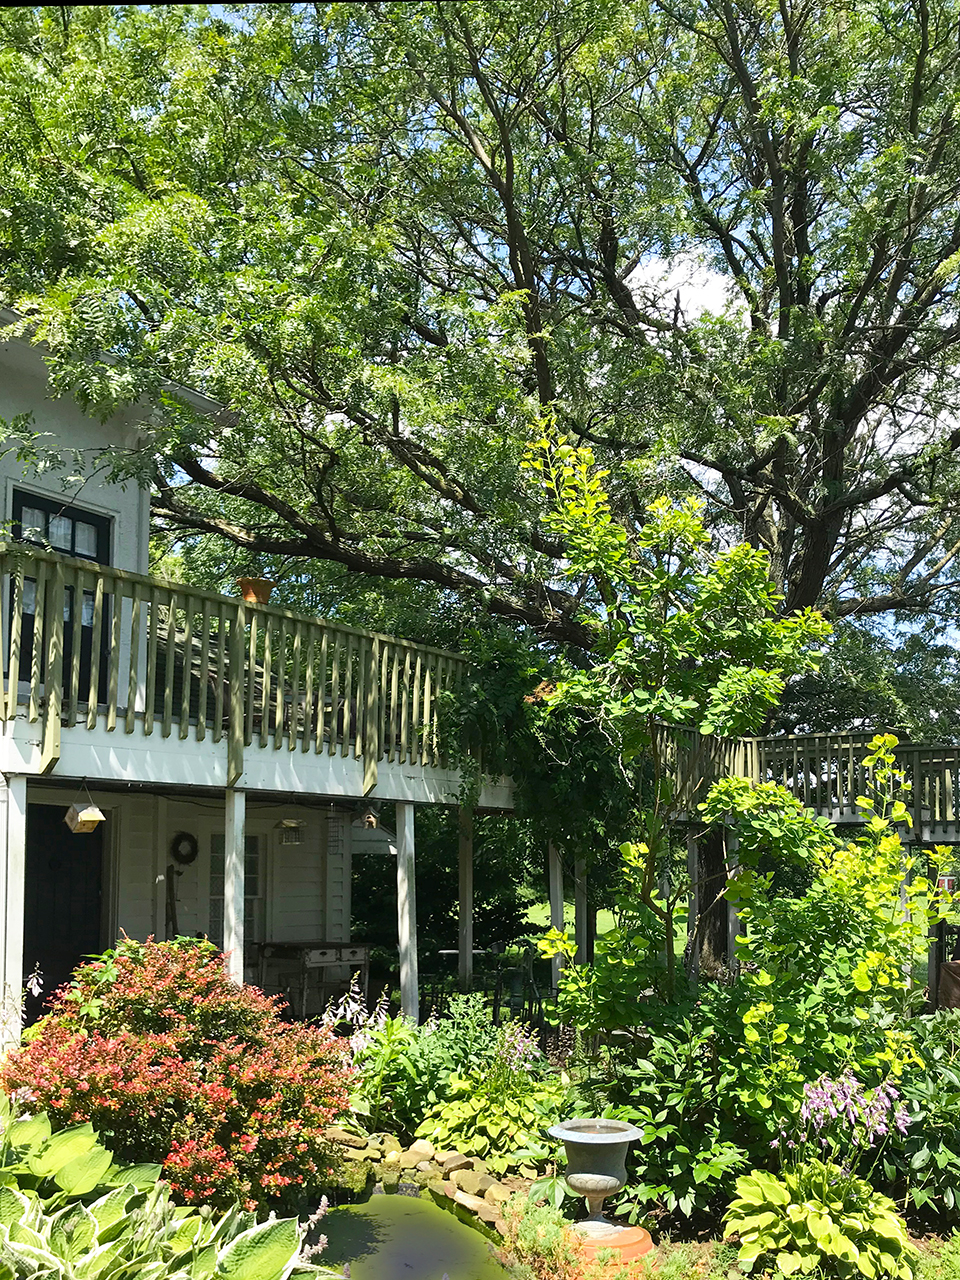 Orchard-house-columbus-hotel-courtyard-huge-tree-private-patio.jpg